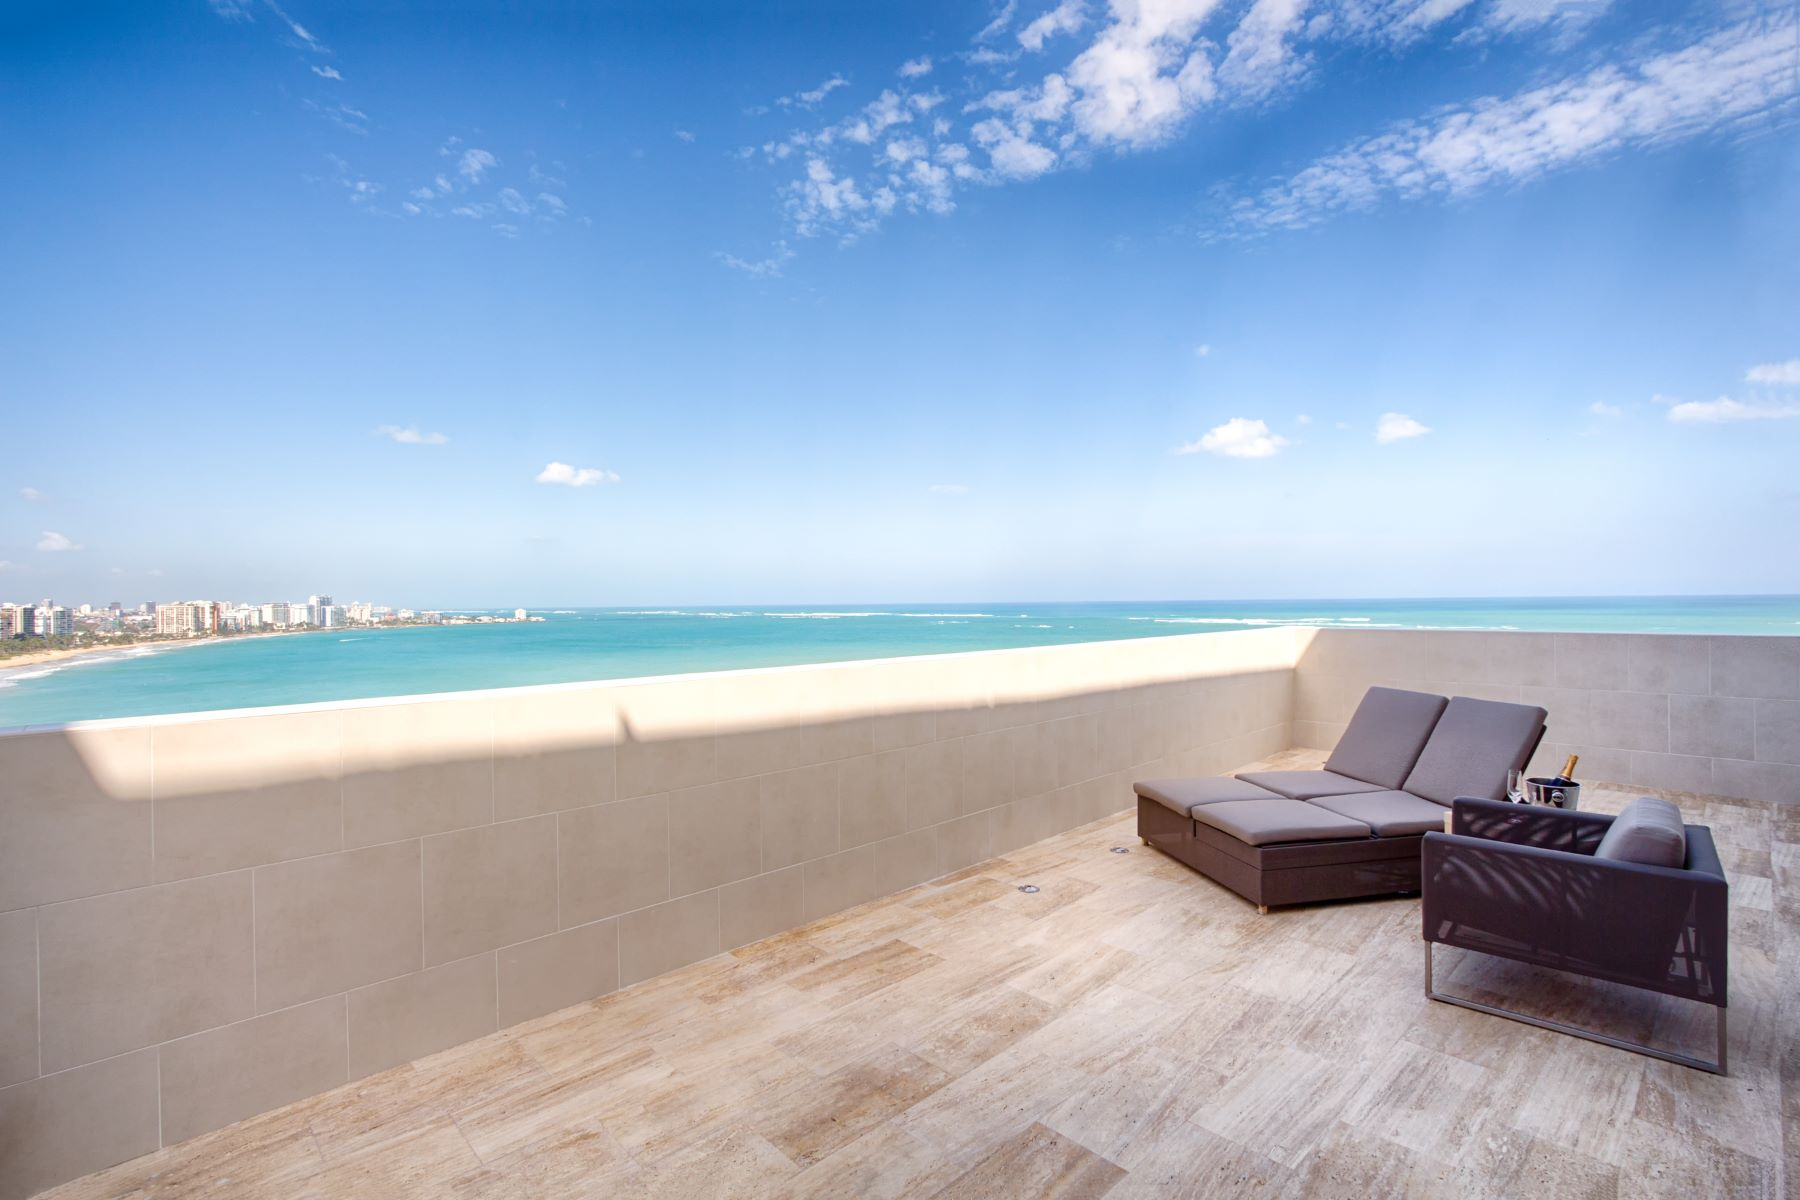 Duplex للـ Sale في The Ultimate Beach Penthouse 6165 Isla Verde Ave. PH Carolina, Puerto Rico 00979 Puerto Rico